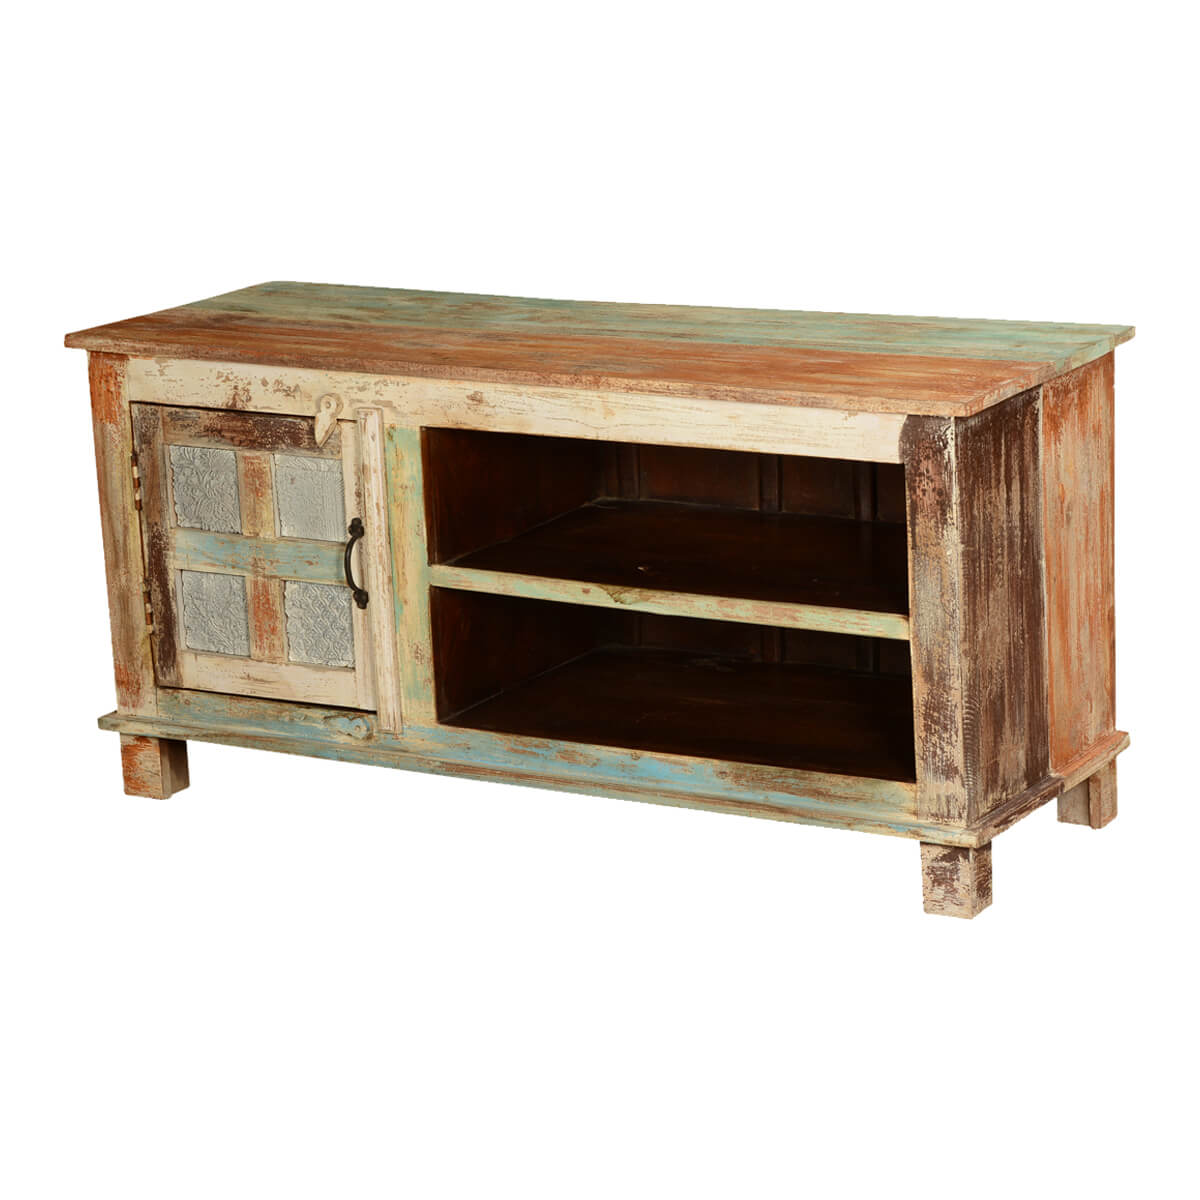 Roslyn wooden window mango wood tv stand media console cabinet